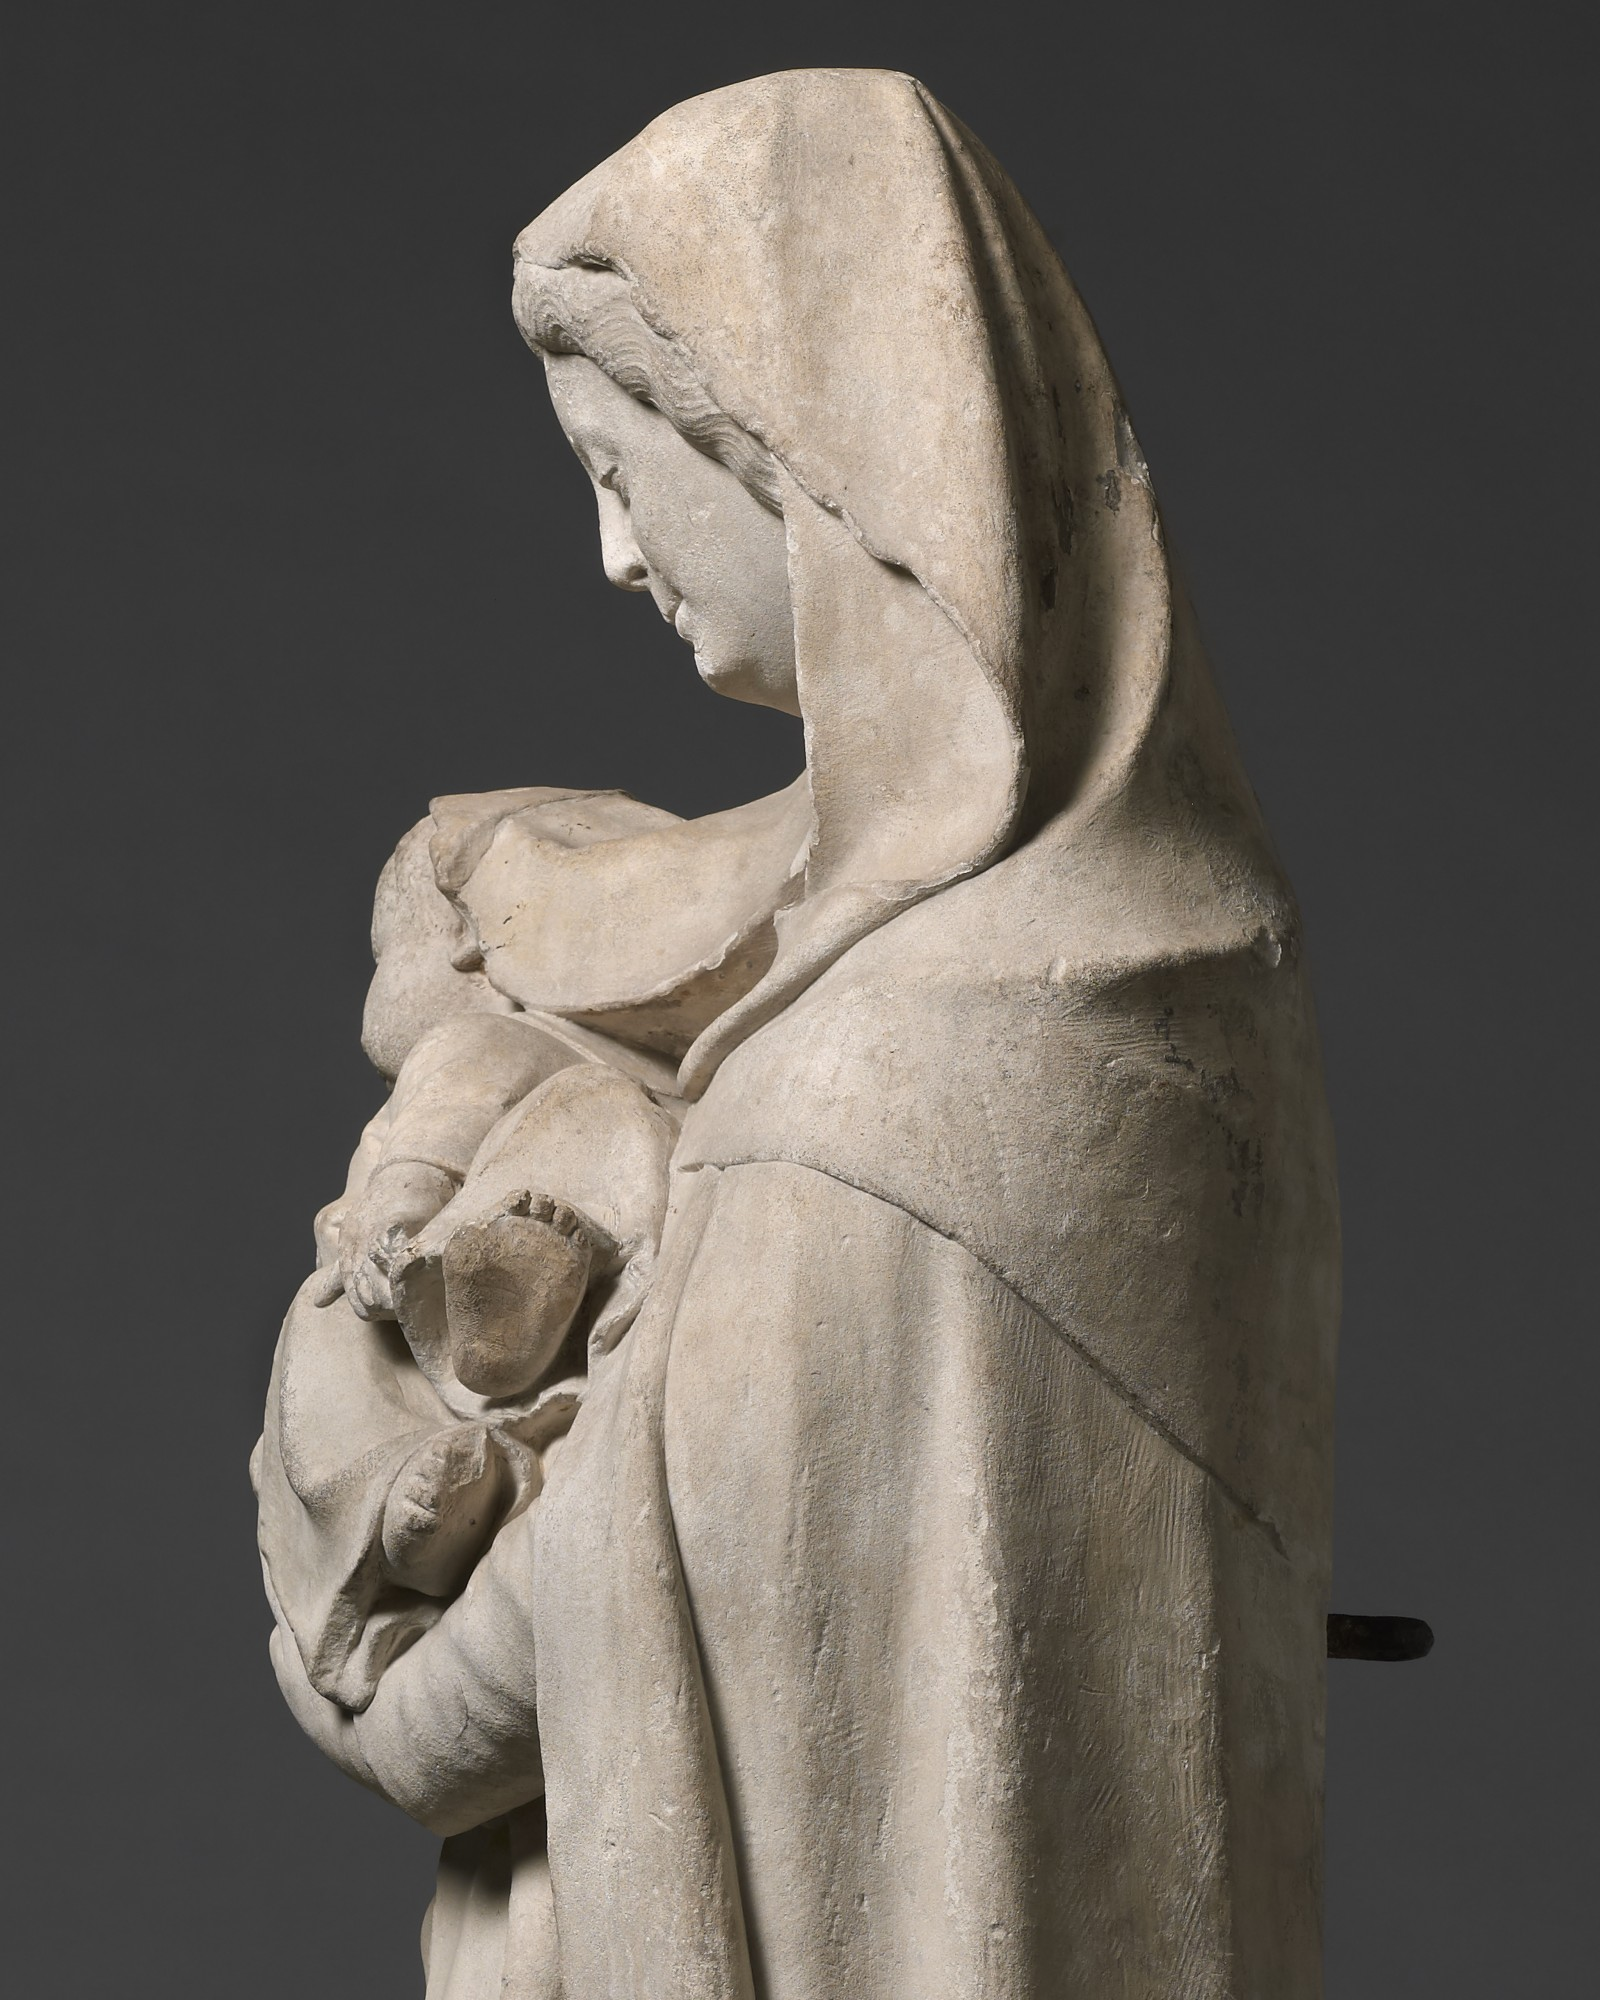 Vierge d'Intercession, Attributed to Jean de la Huerta (active 1431 –1462), France, Burg